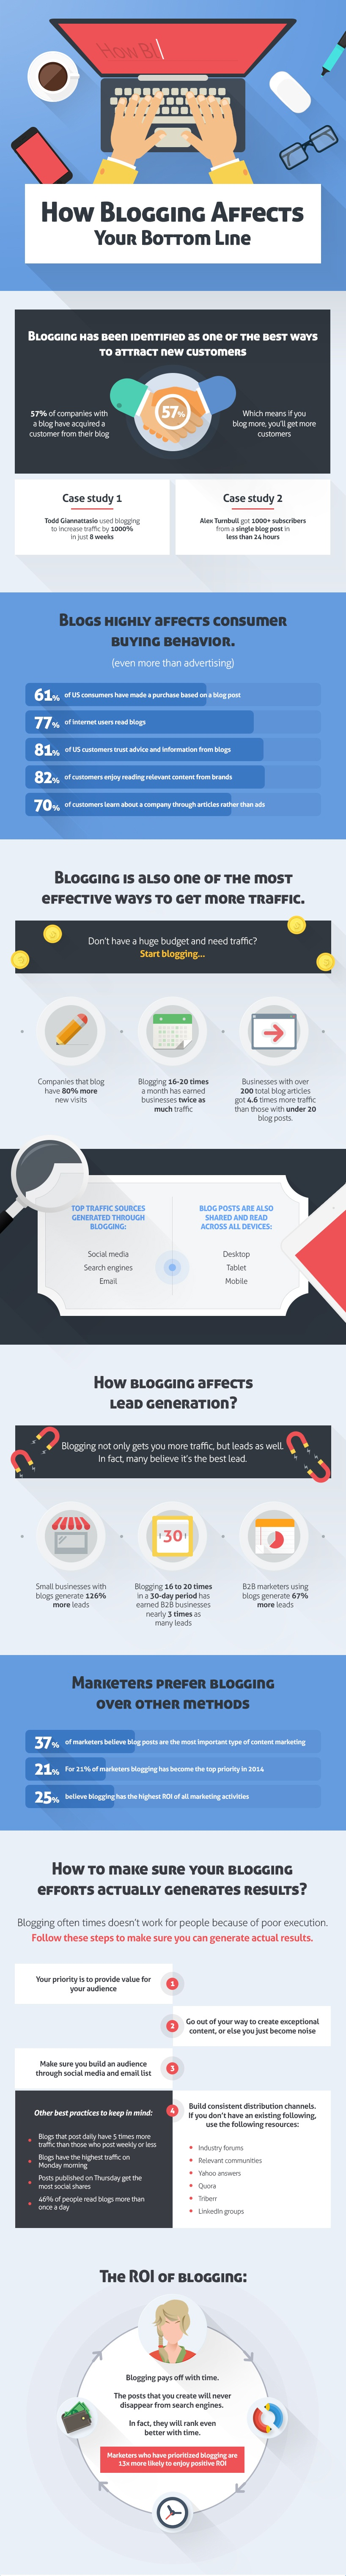 Blogging improves your bottom line